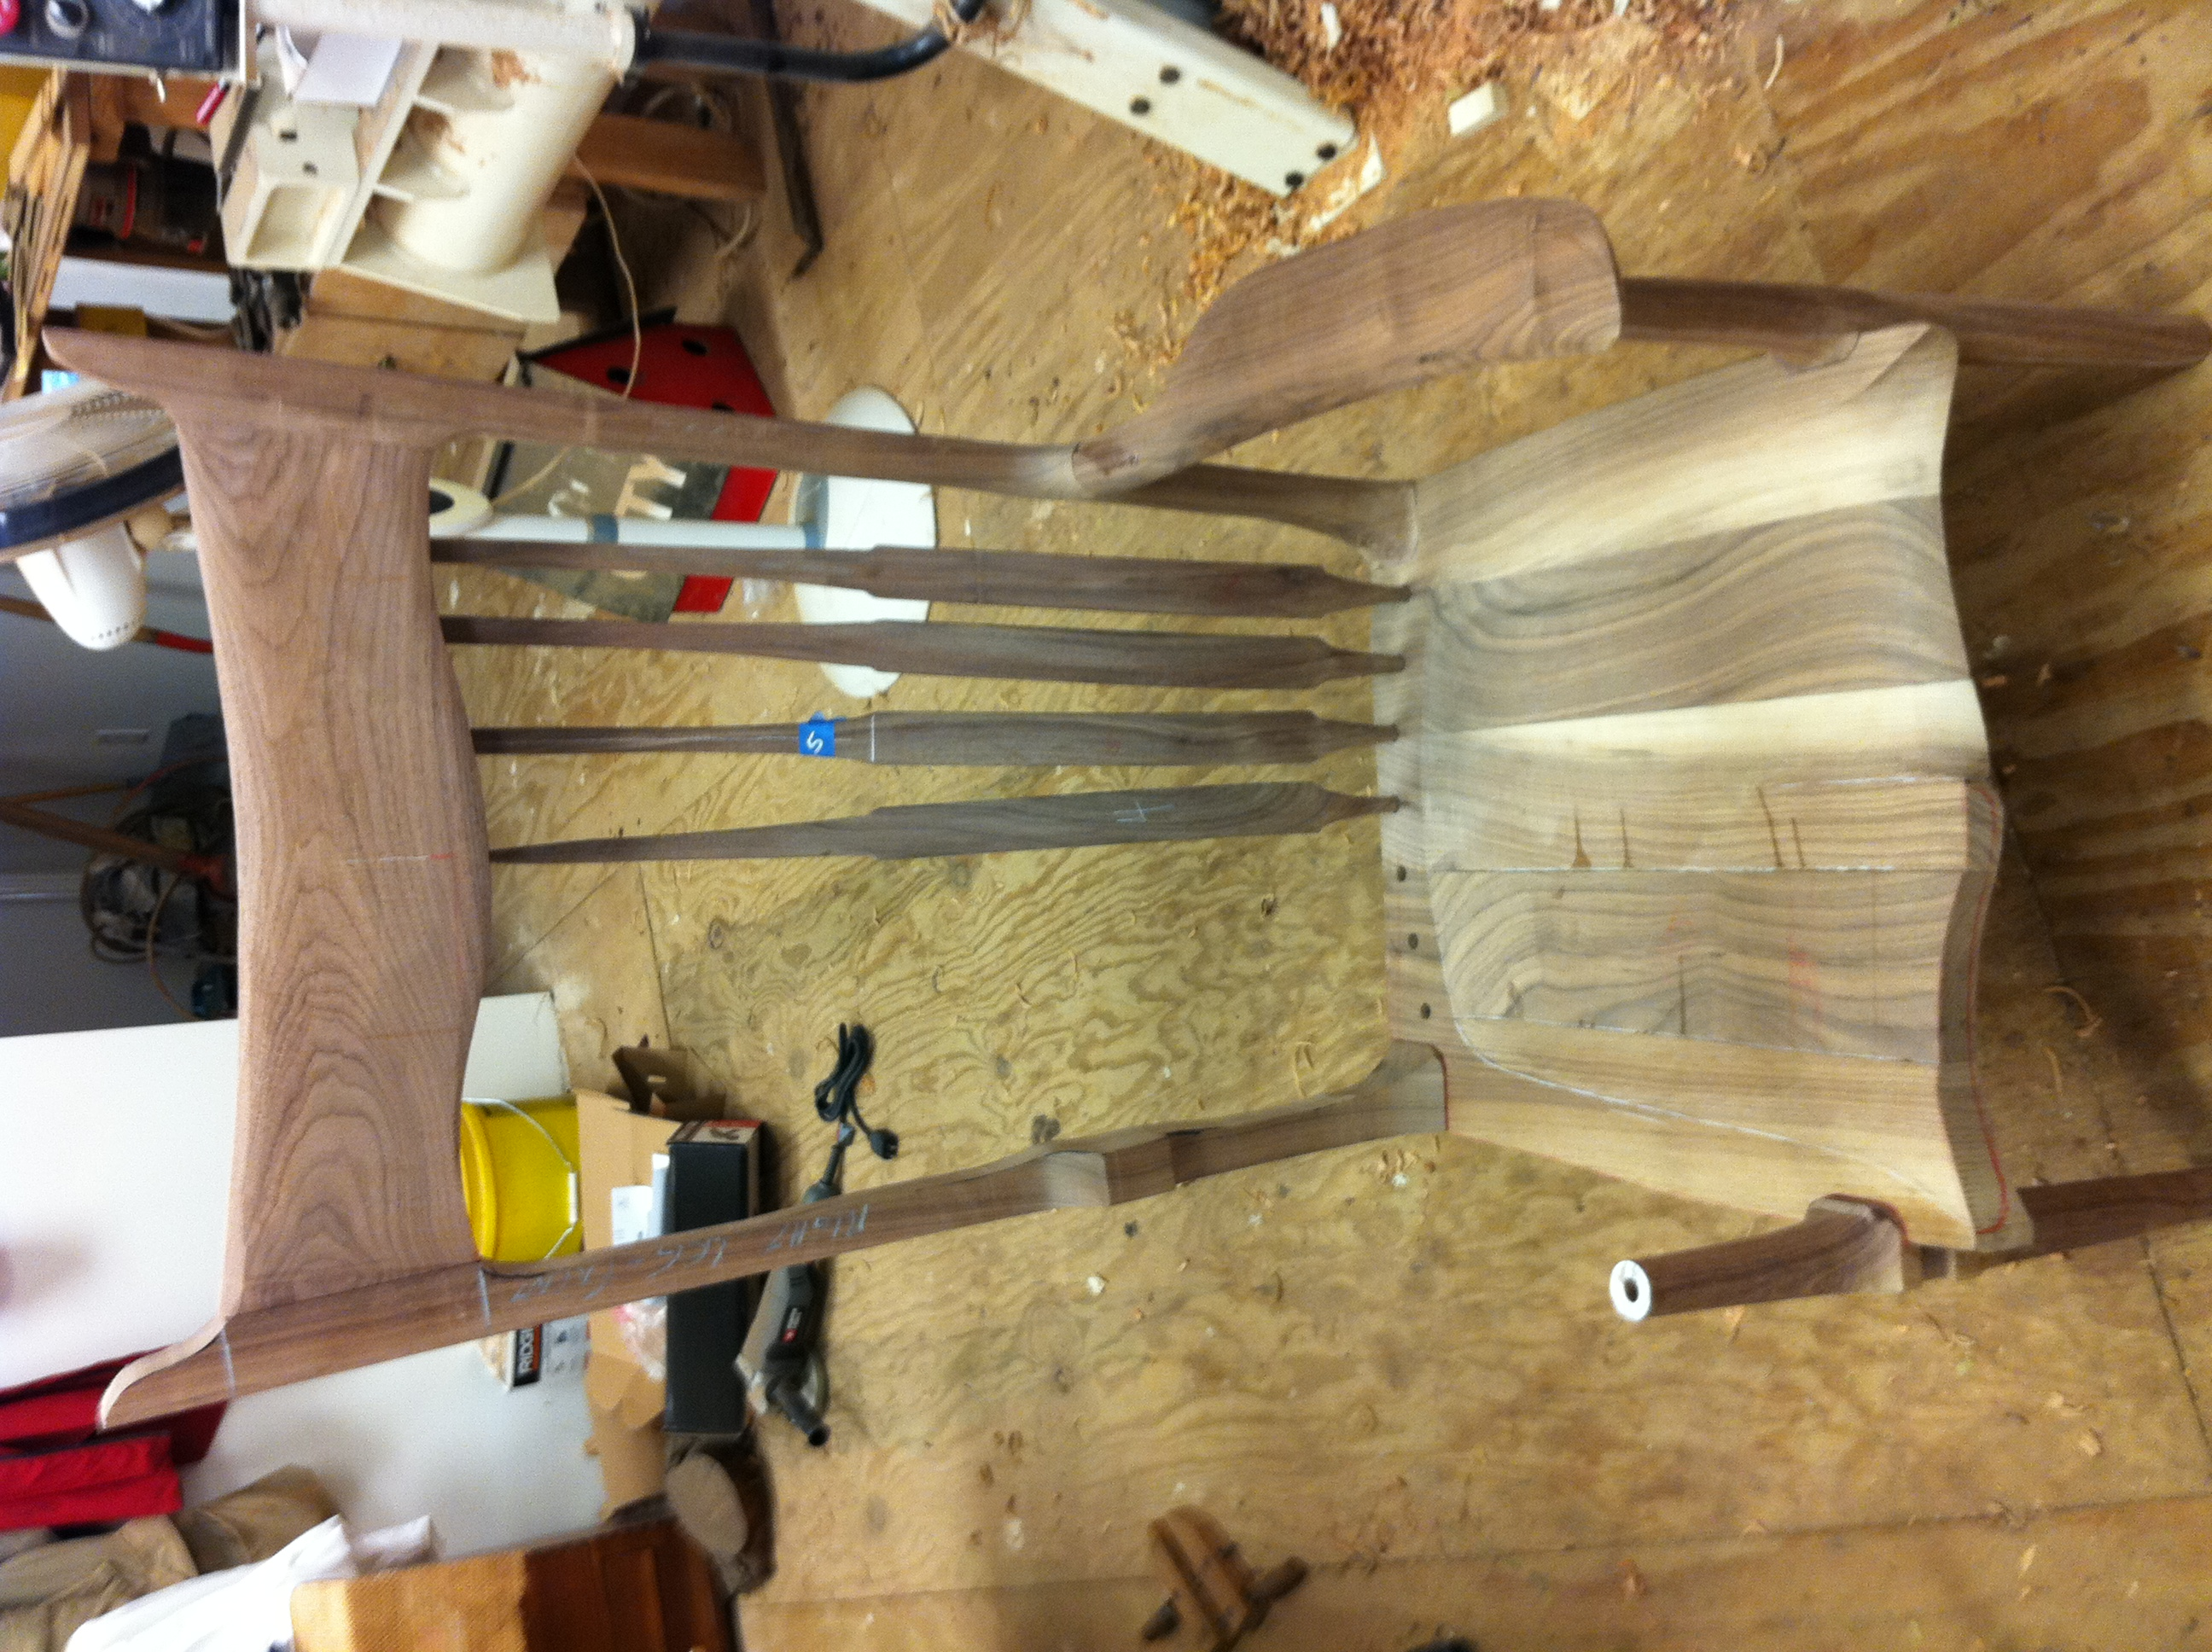 From the Chair-Man: Progress Report on the Maloof Inspired Rocker Kit